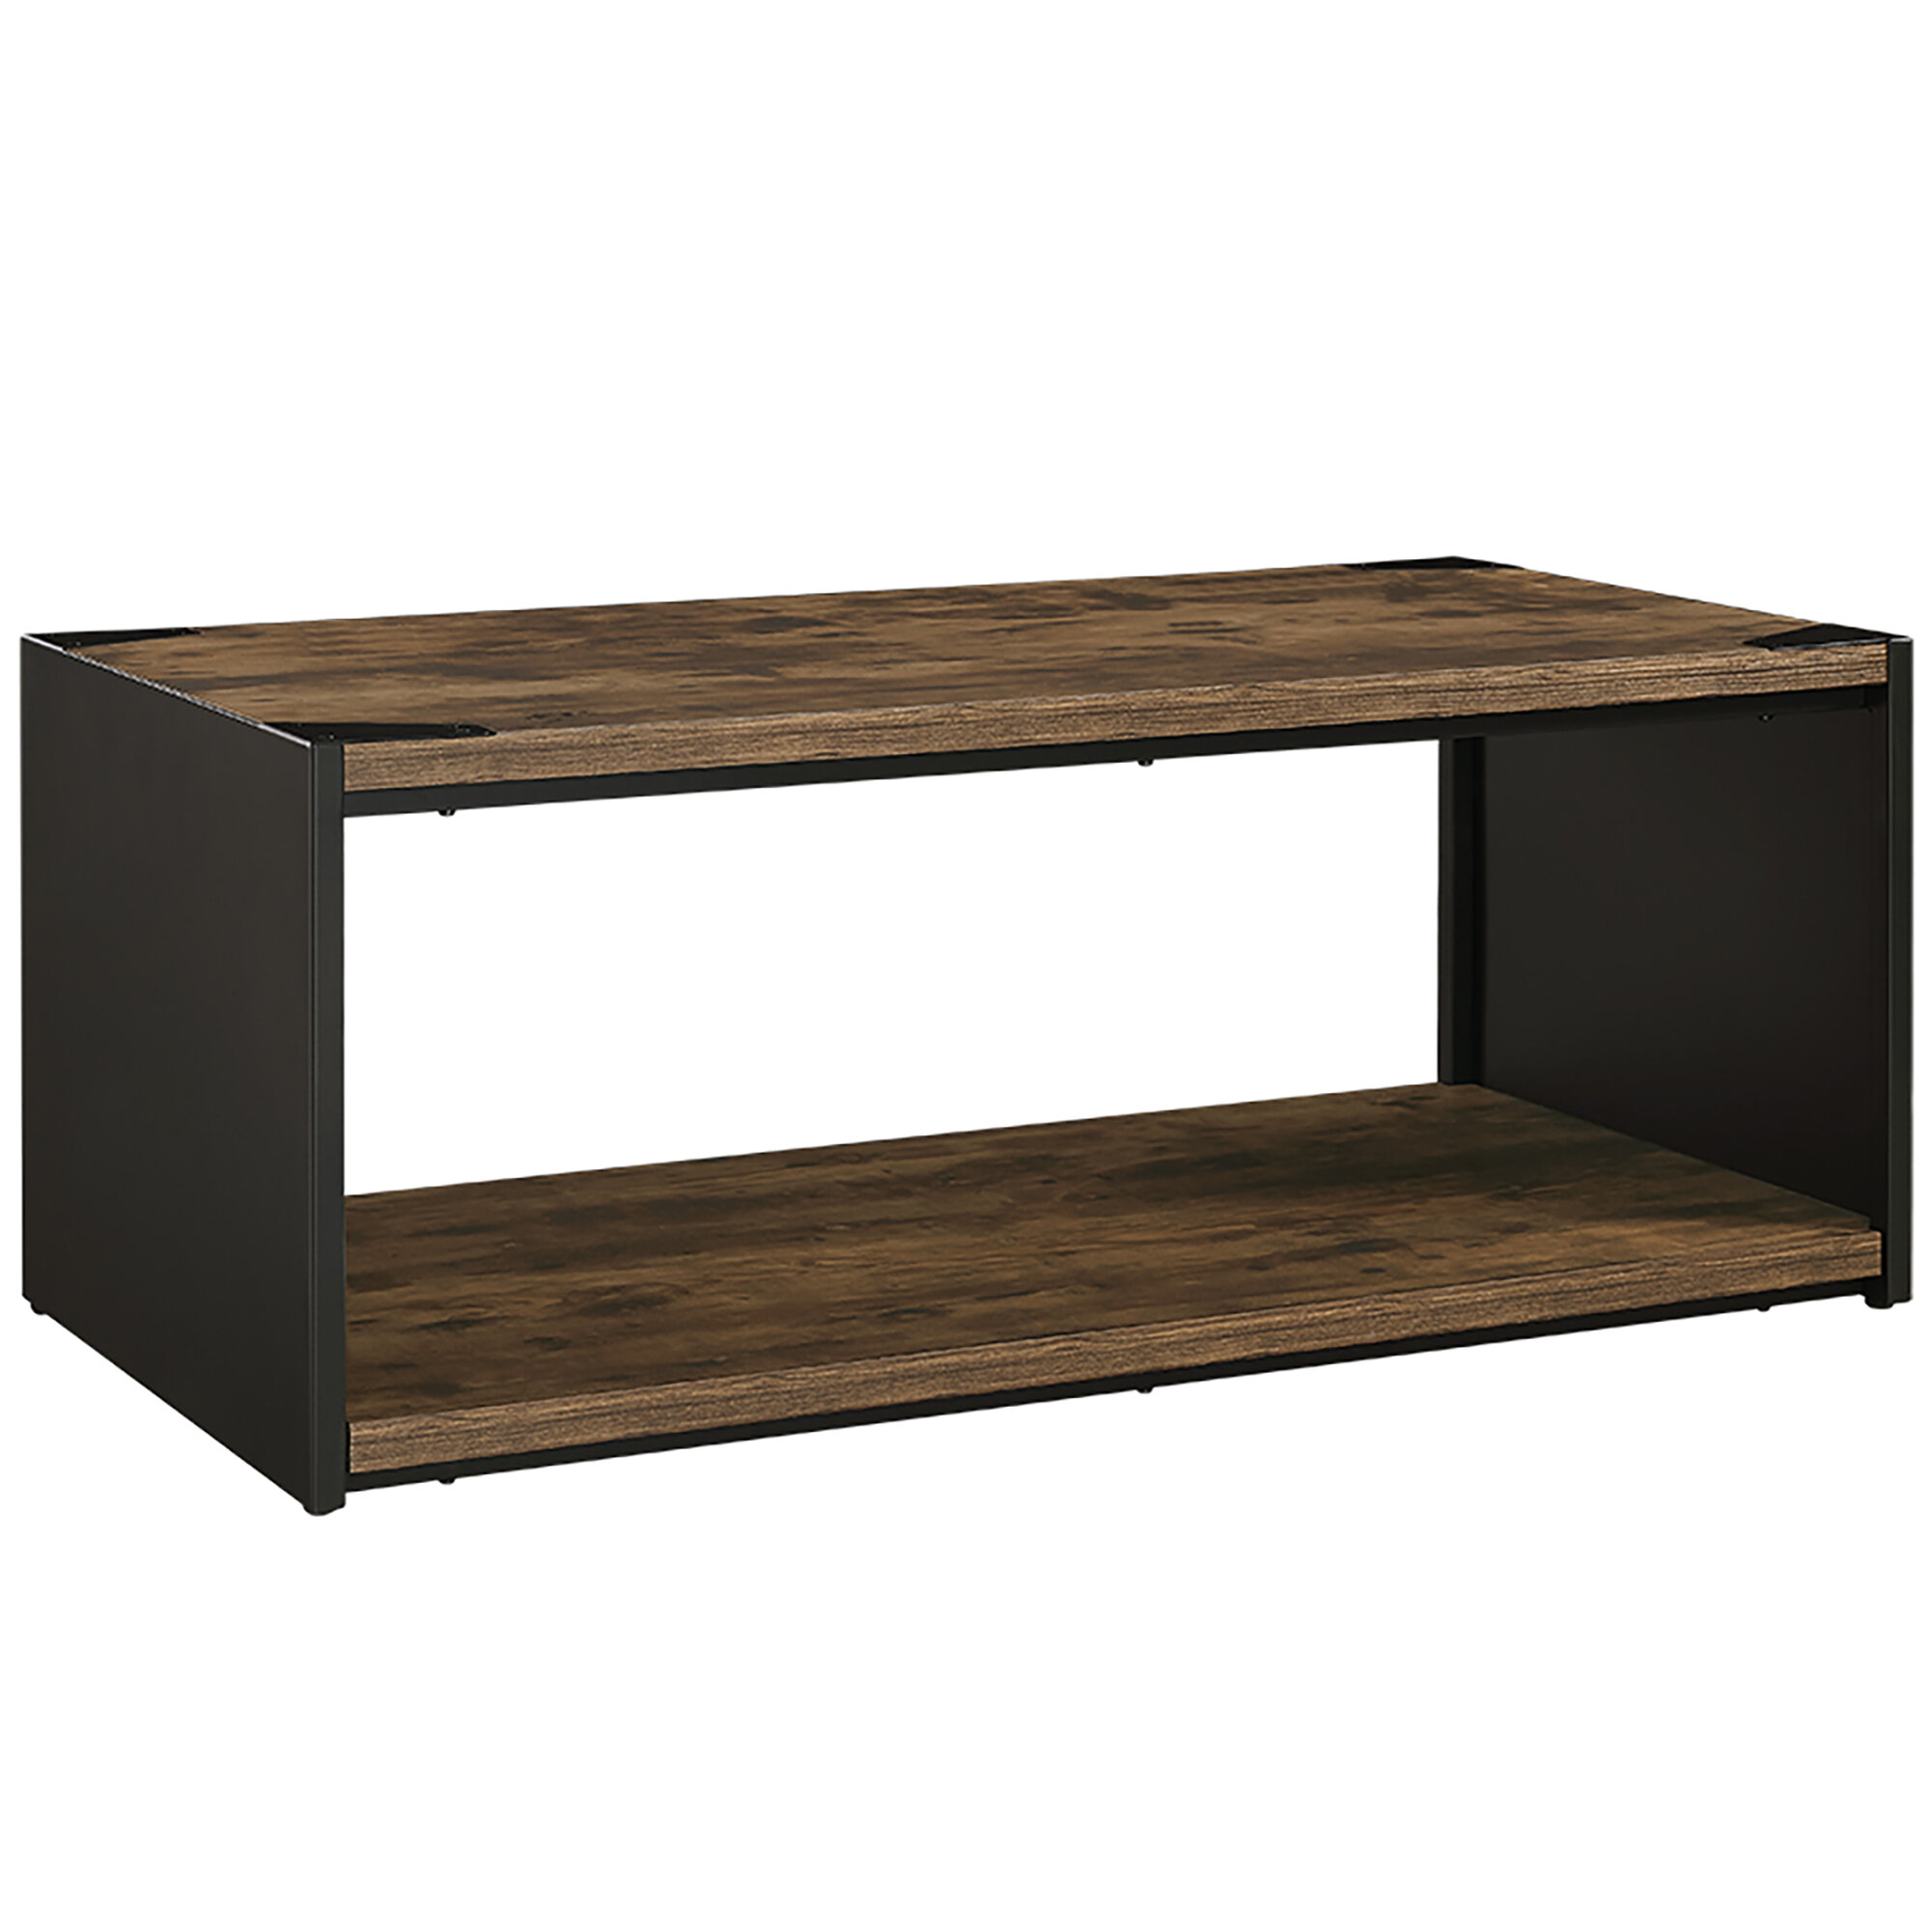 Union Rustic et Steel Plate and Wood Coffee Table & Reviews